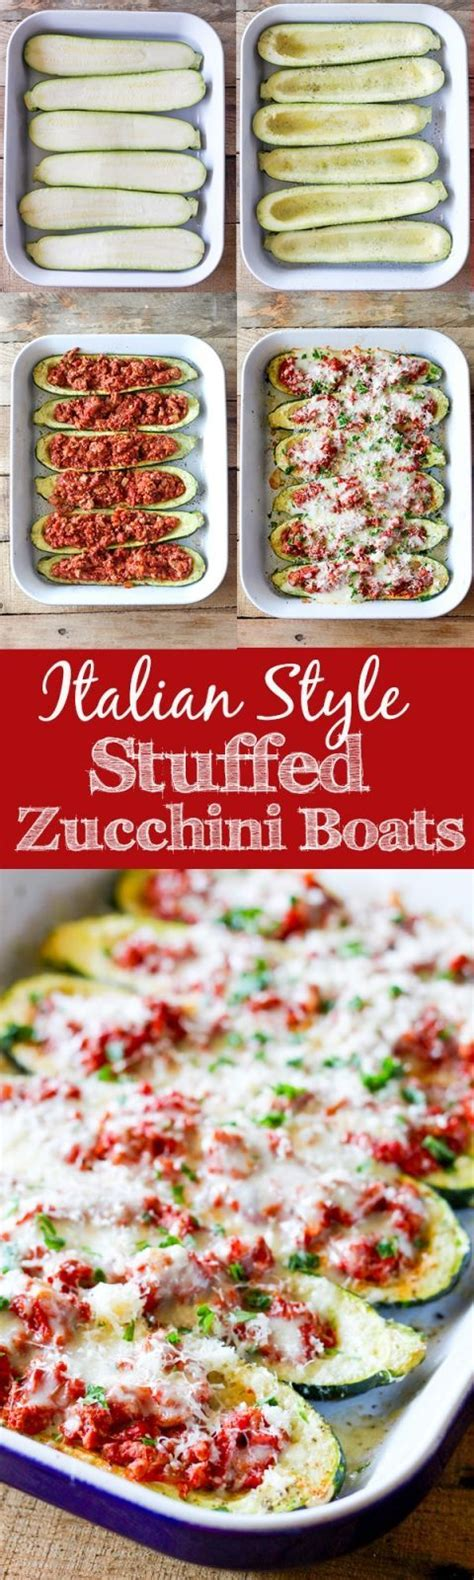 Come With Me Vegetarian Thanksgiving Ae Invites by 1000 Ideas About Vegetarian Stuffed Zucchini On